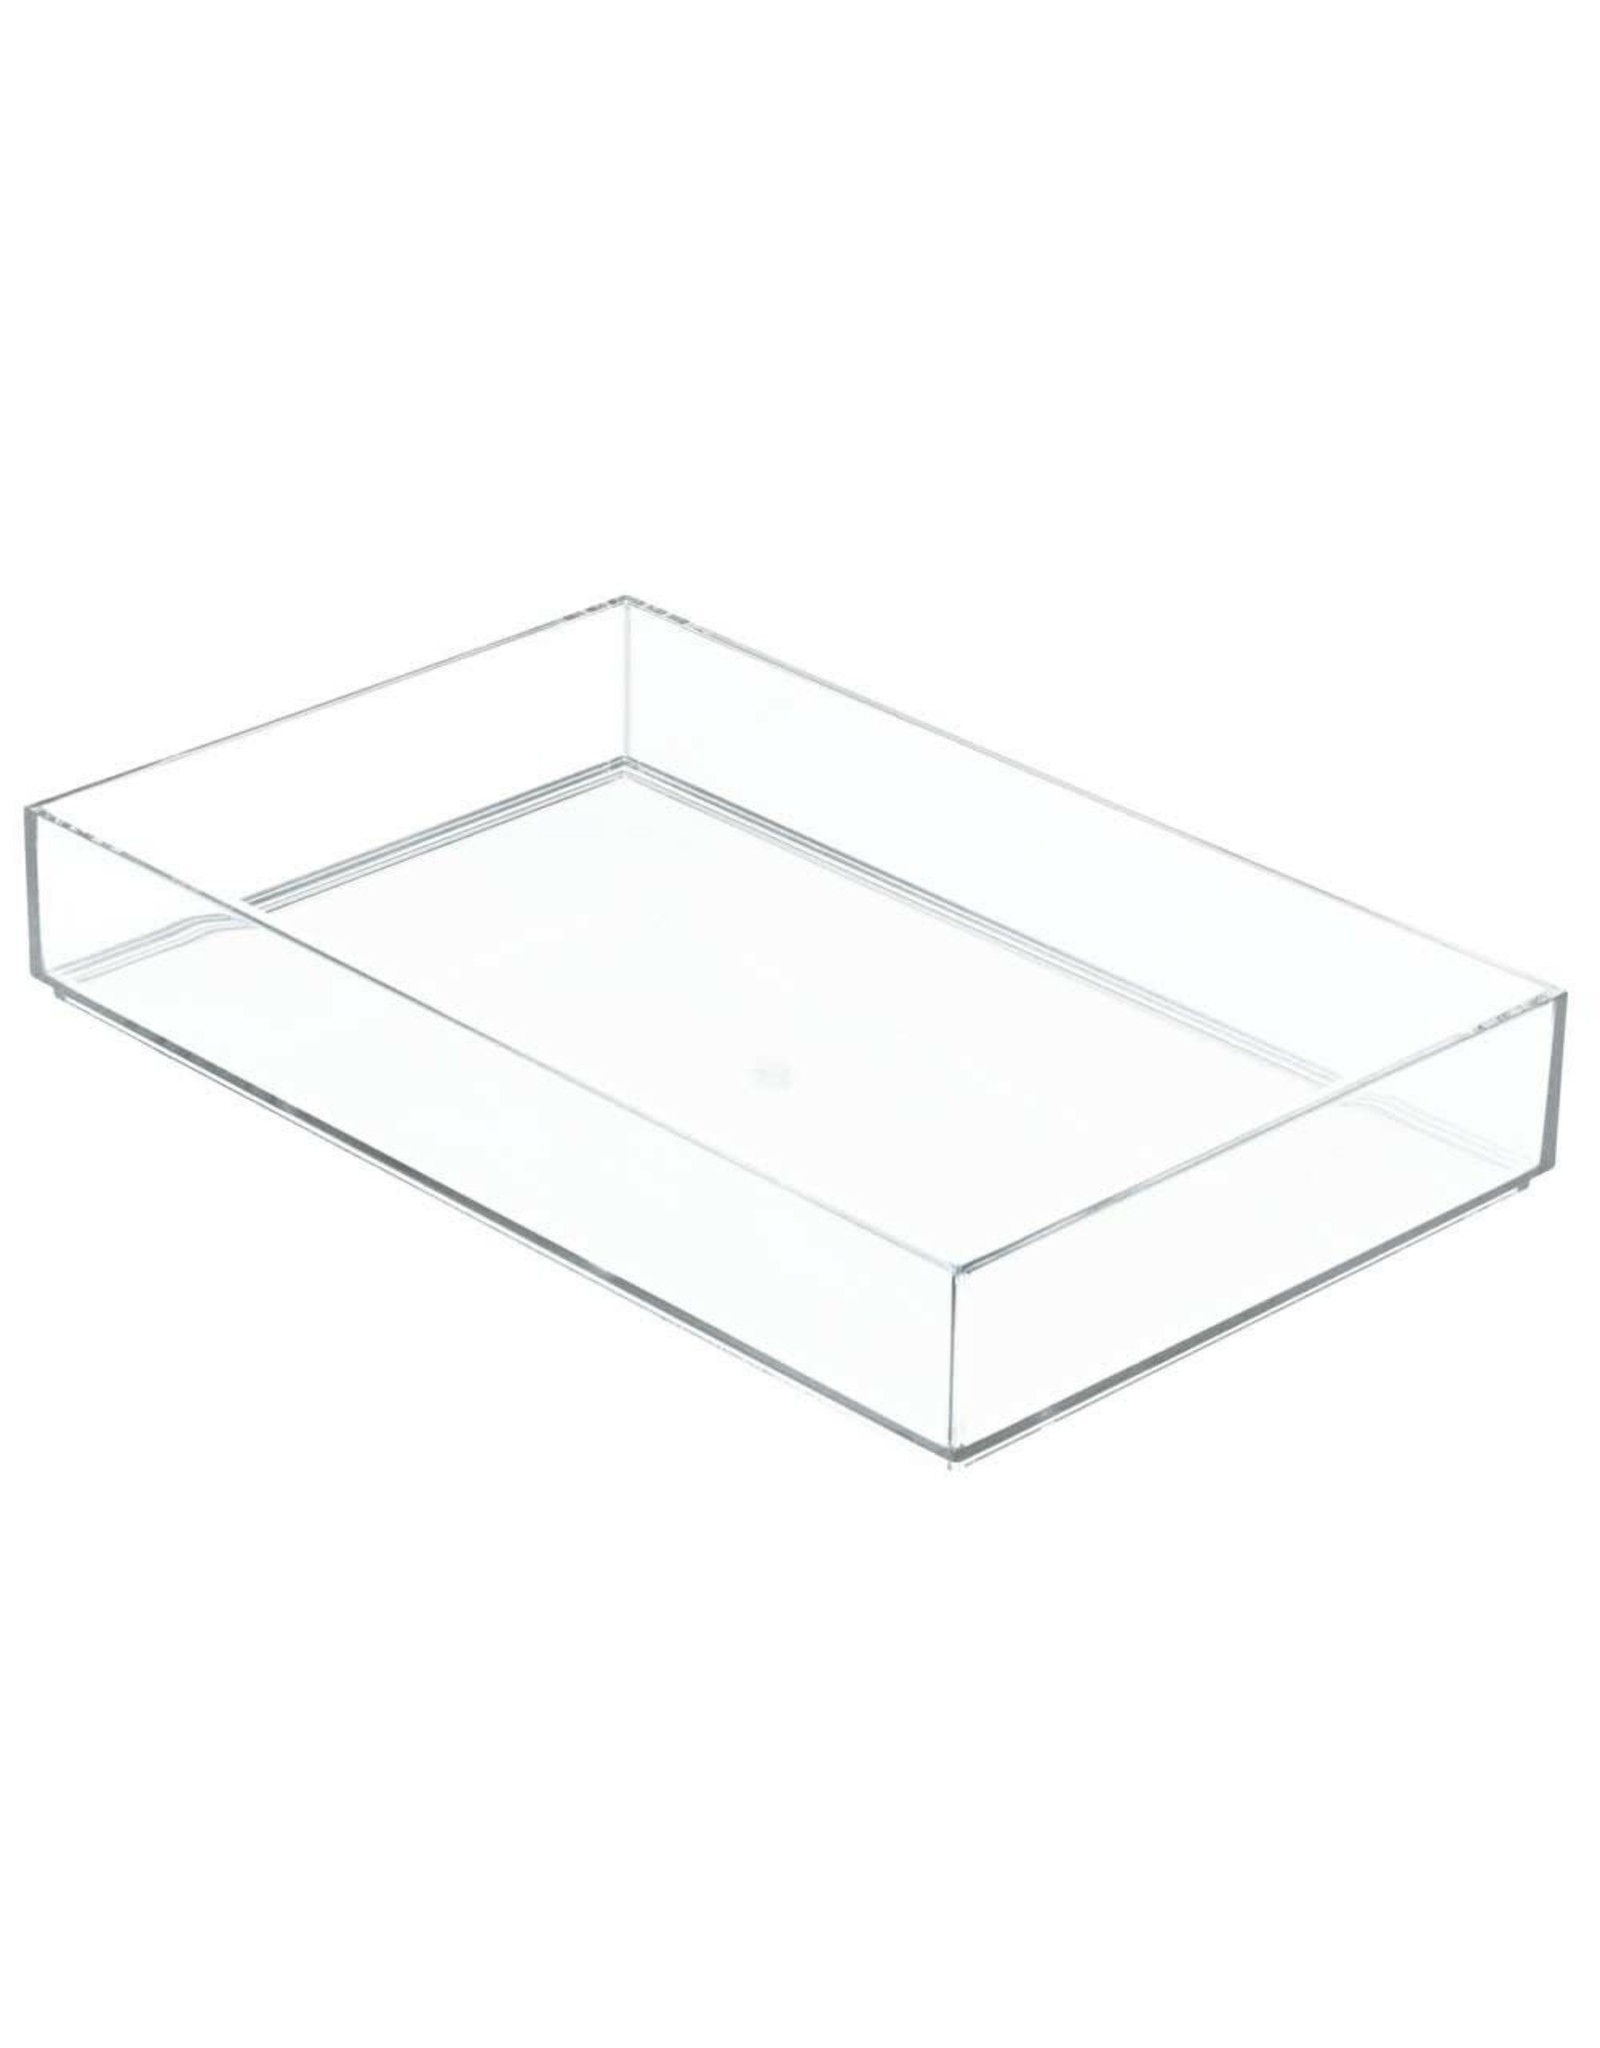 Clarity Drawer Organizer 8'' x 12'' x 2''